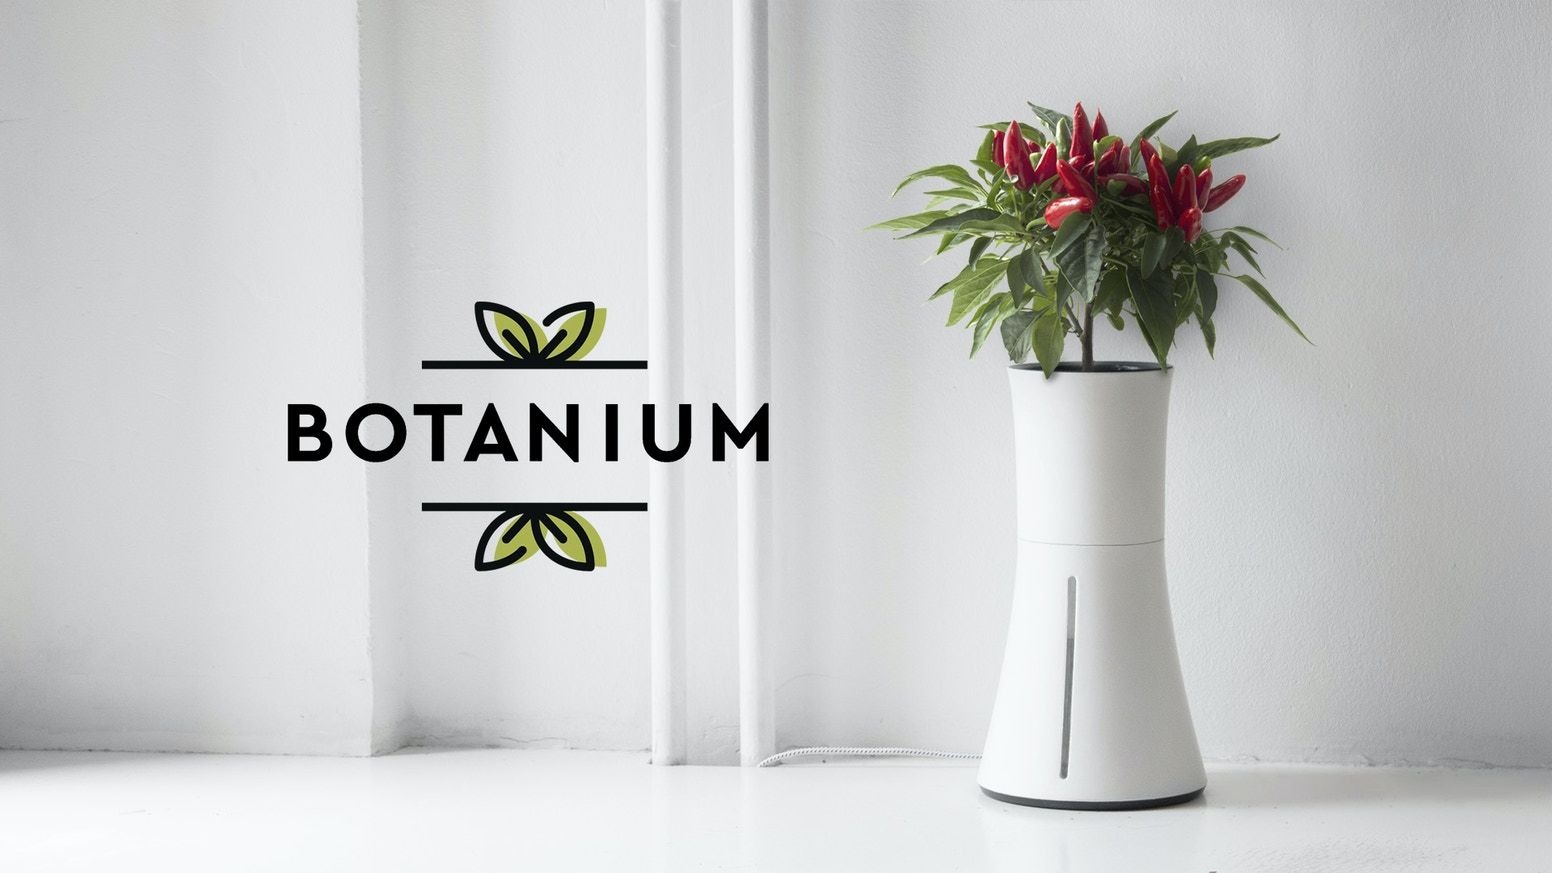 Enjoy growing herbs or chili without effort. Botanium takes care of the plant for you, thanks to automated, soil-free growing.